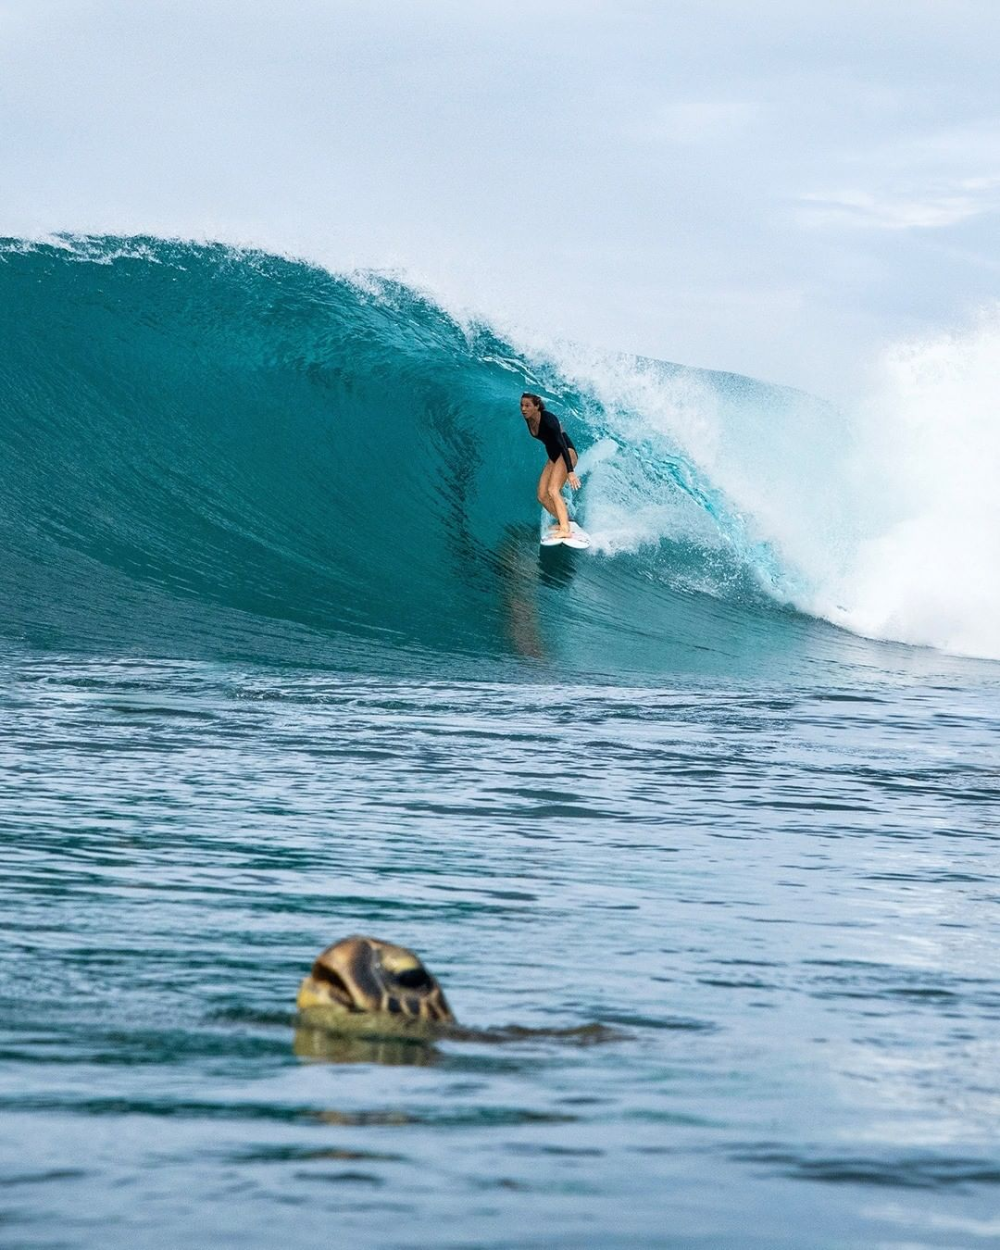 Pin By Izzy Poole On Misc In 2020 World Surf World Surf League Surfing Photography